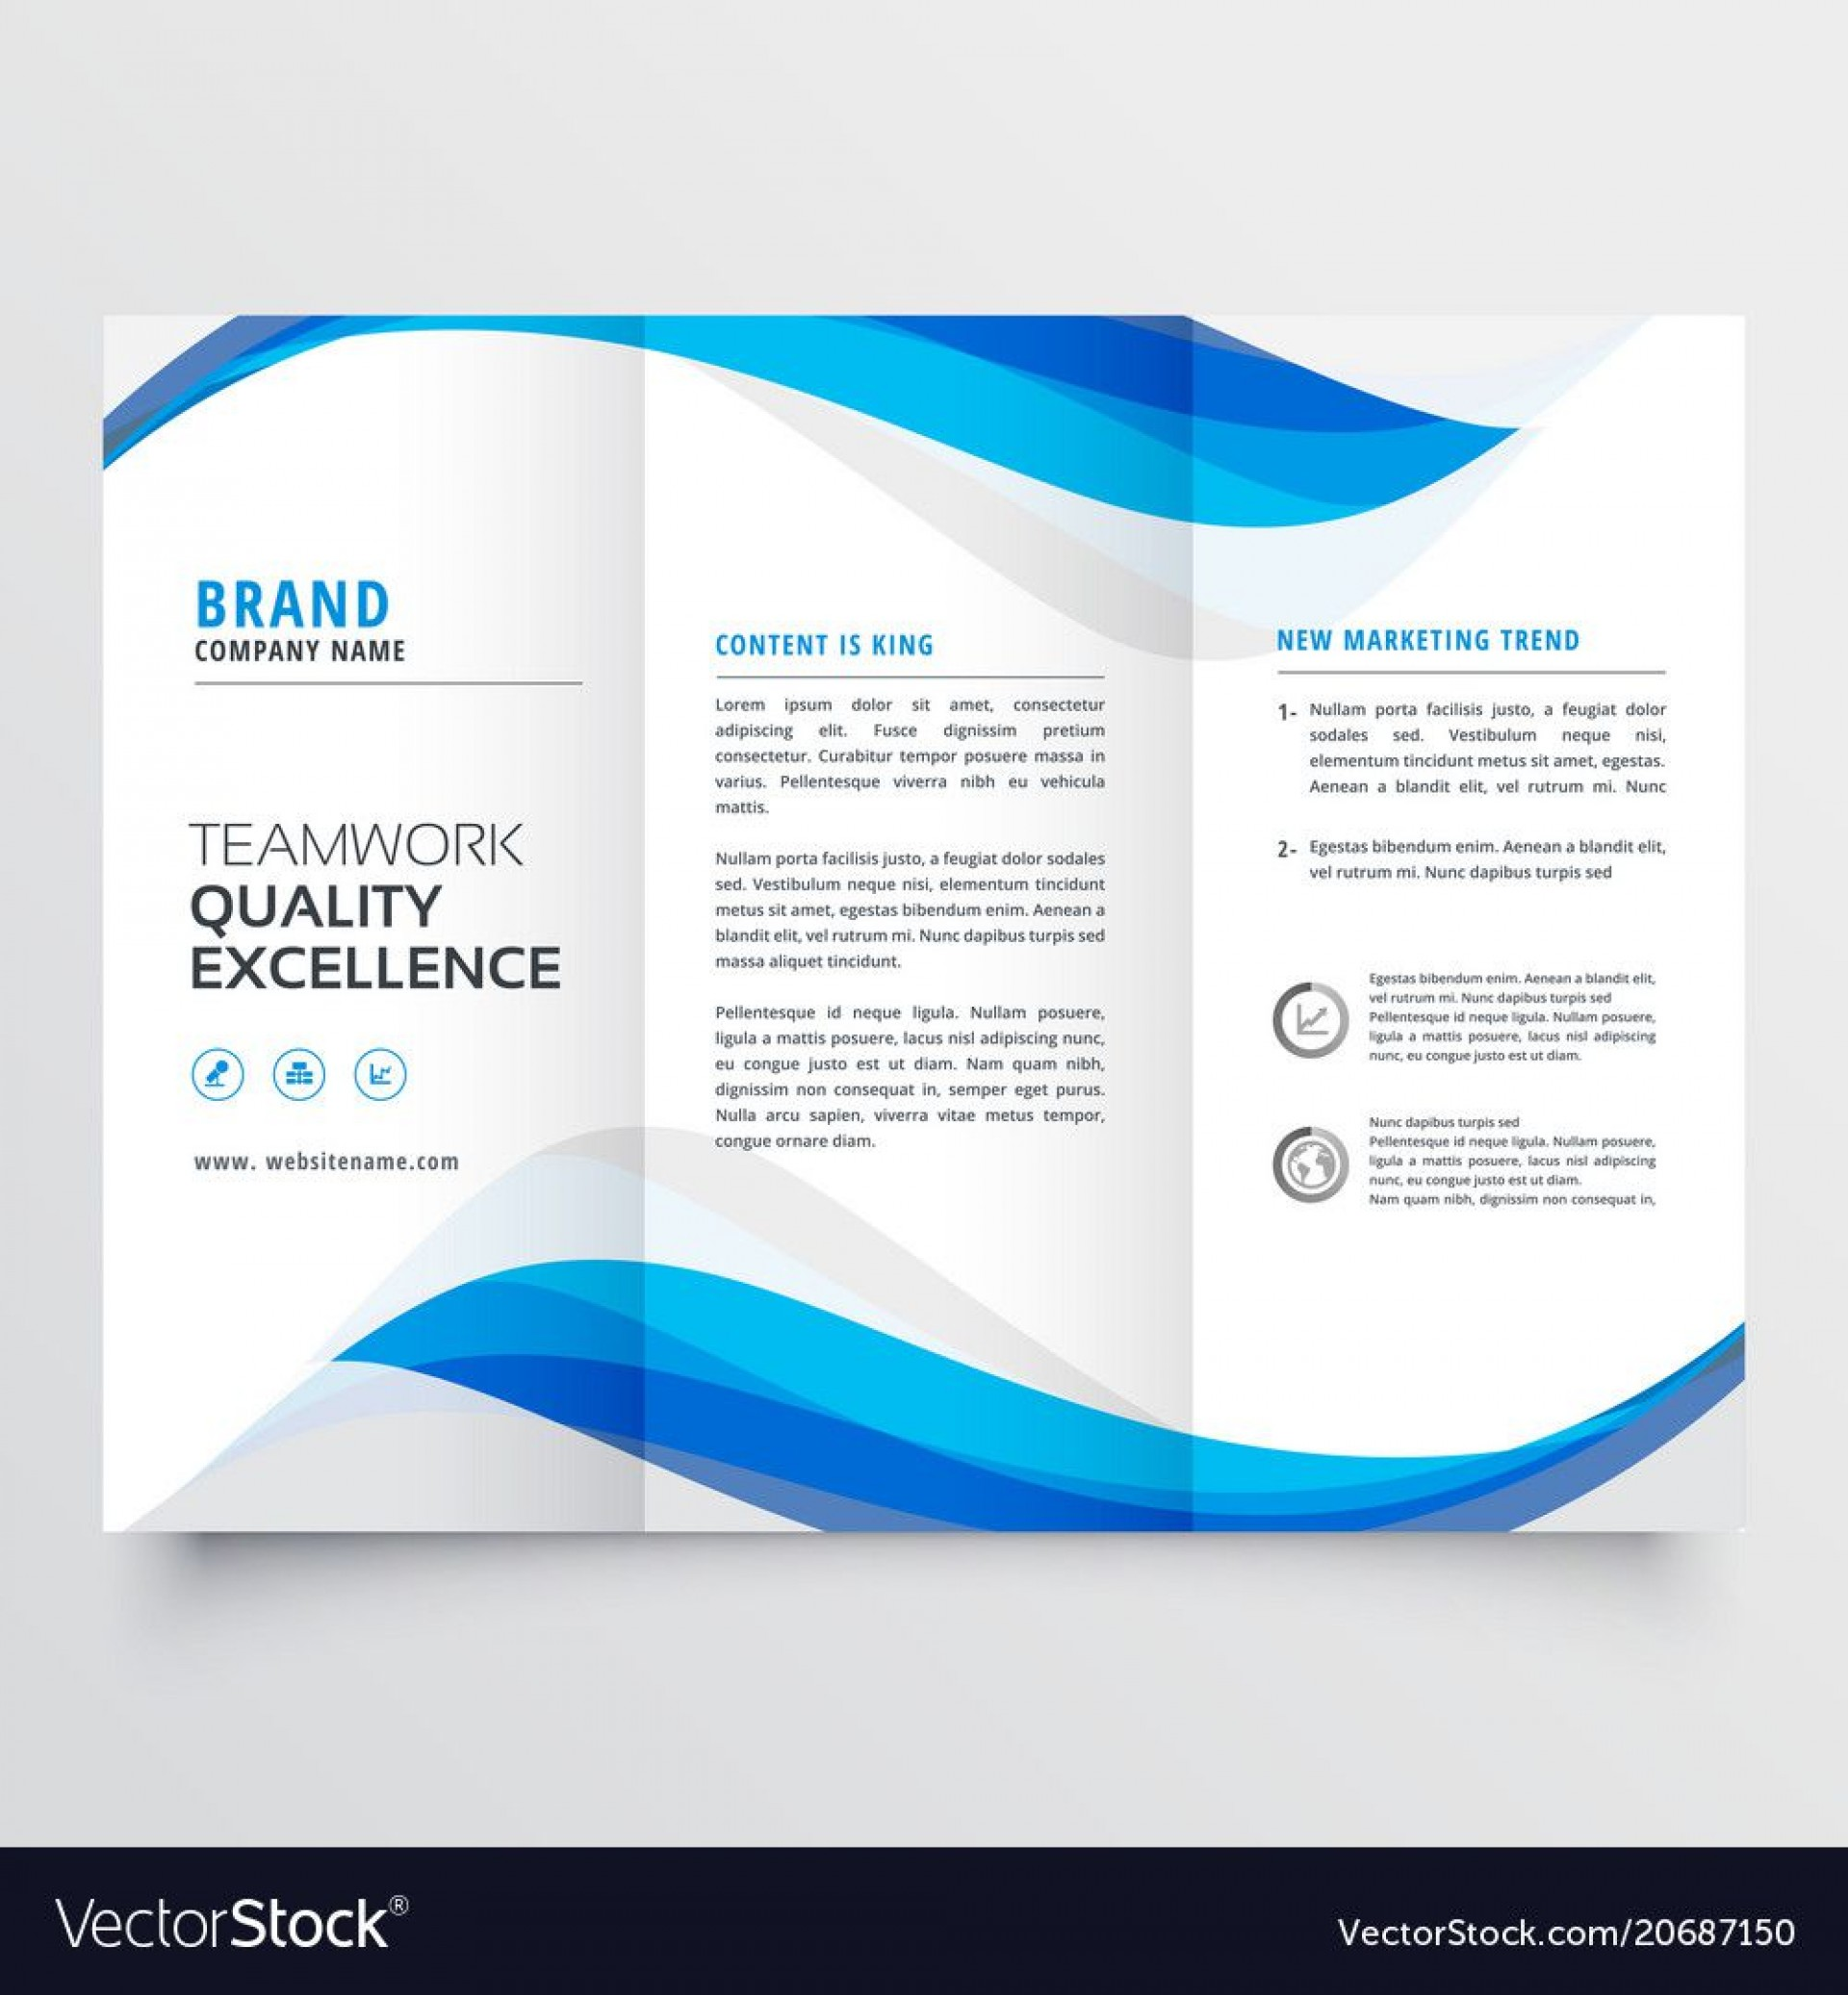 007 Imposing Free Brochure Template Download Idea  Psd Tri Fold For Word Corporate Busines1920